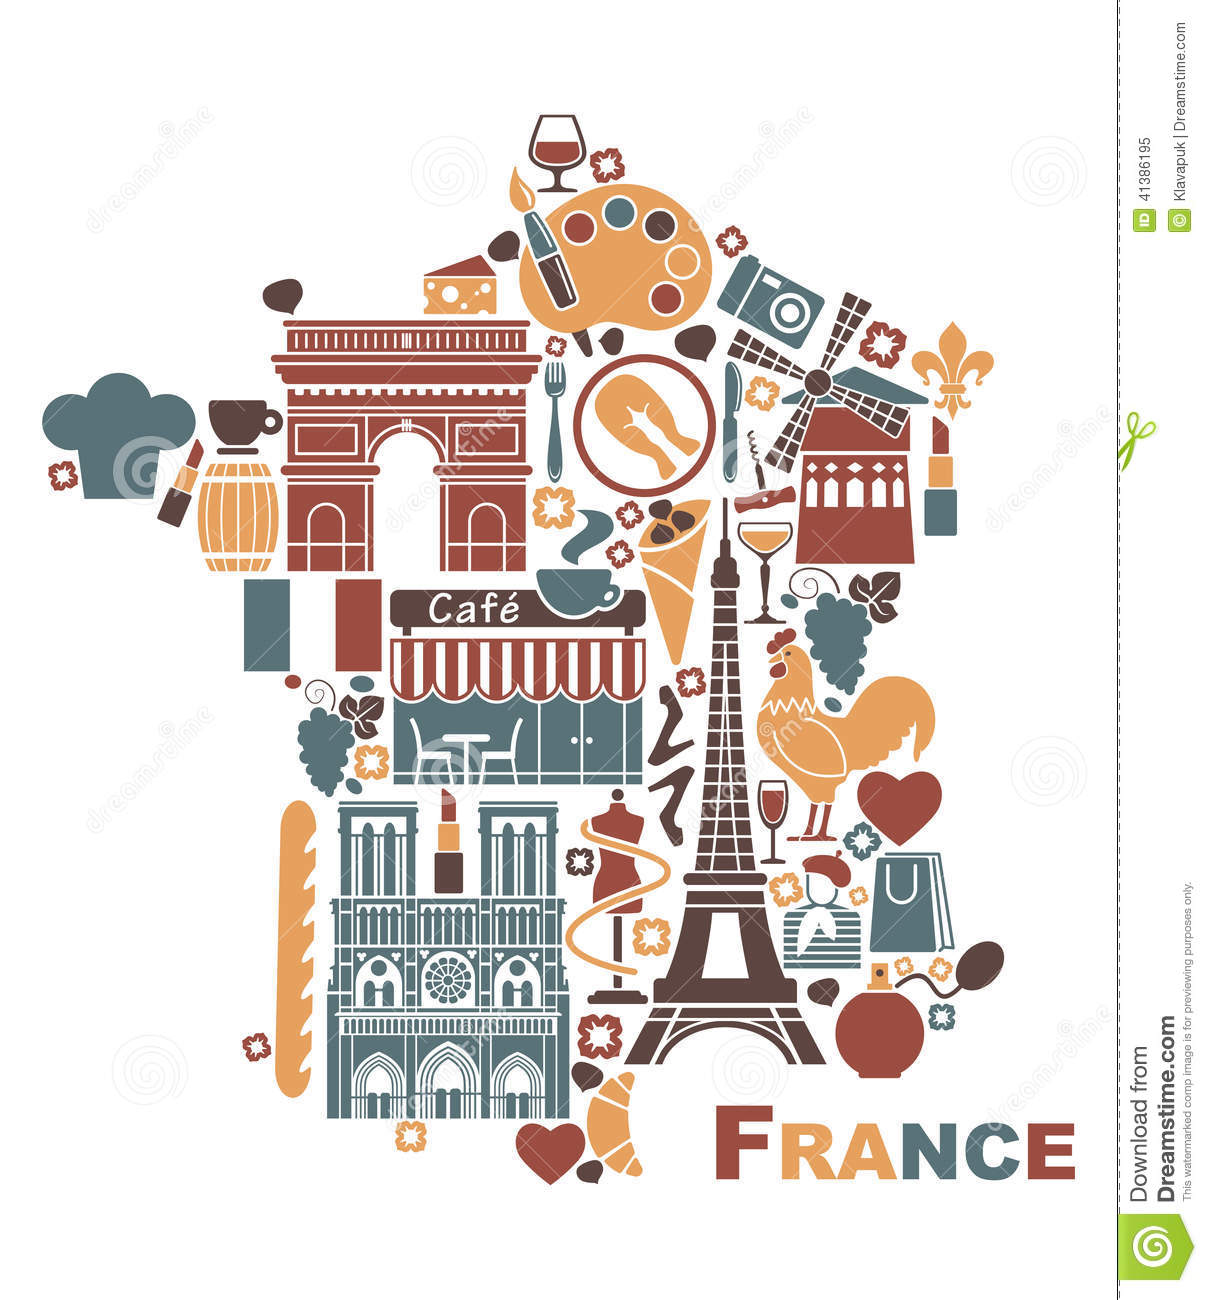 Symbols Of France In The Form Of A Map Stock Vector - Image: 41386195